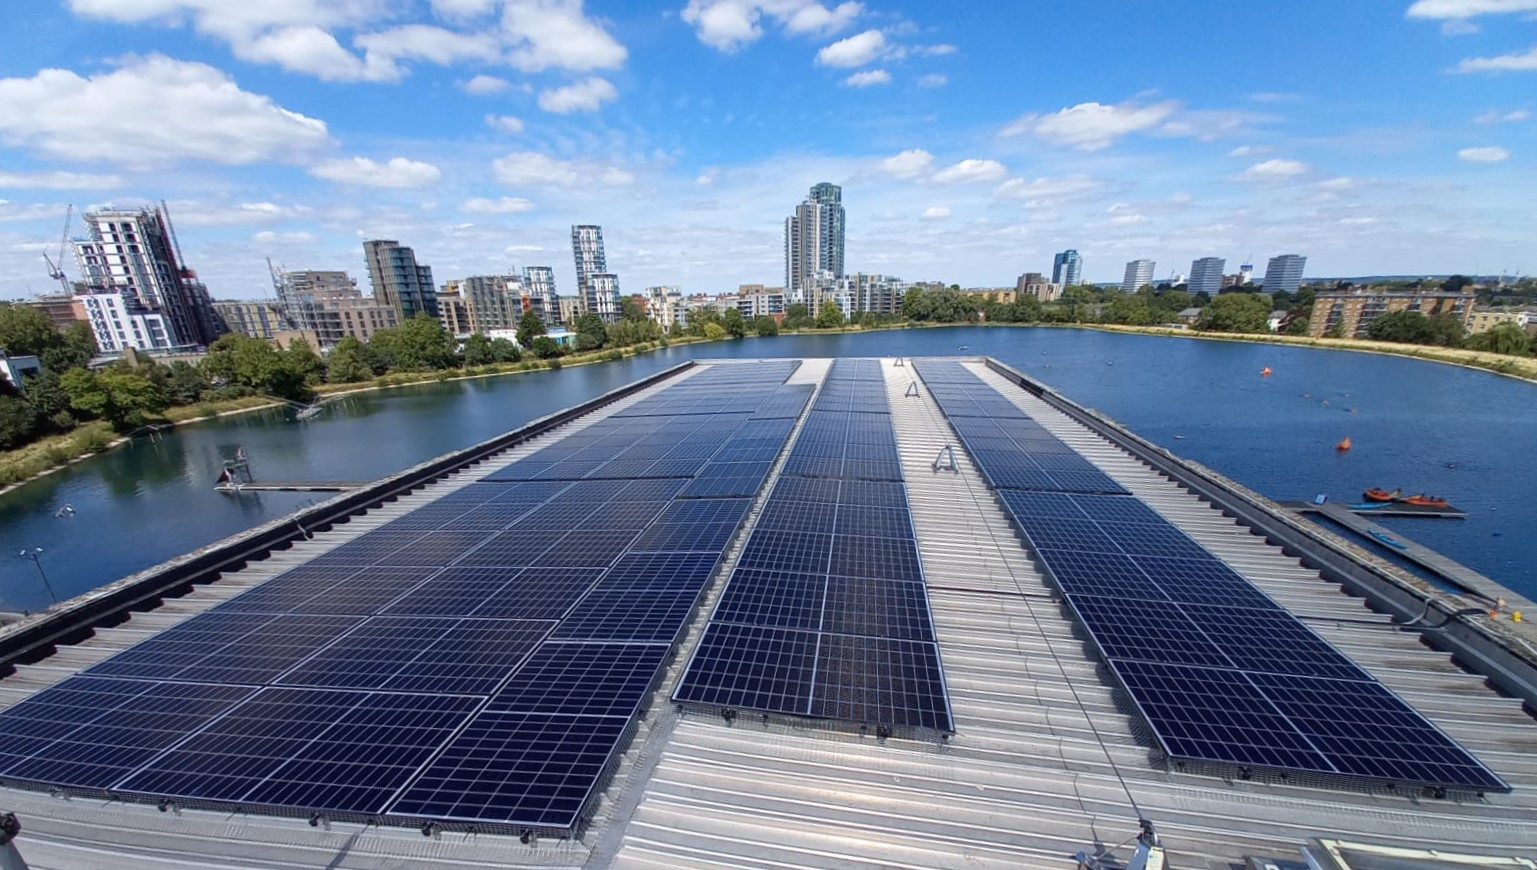 Spirit Installs Solar Panels at West Reservoir Centre